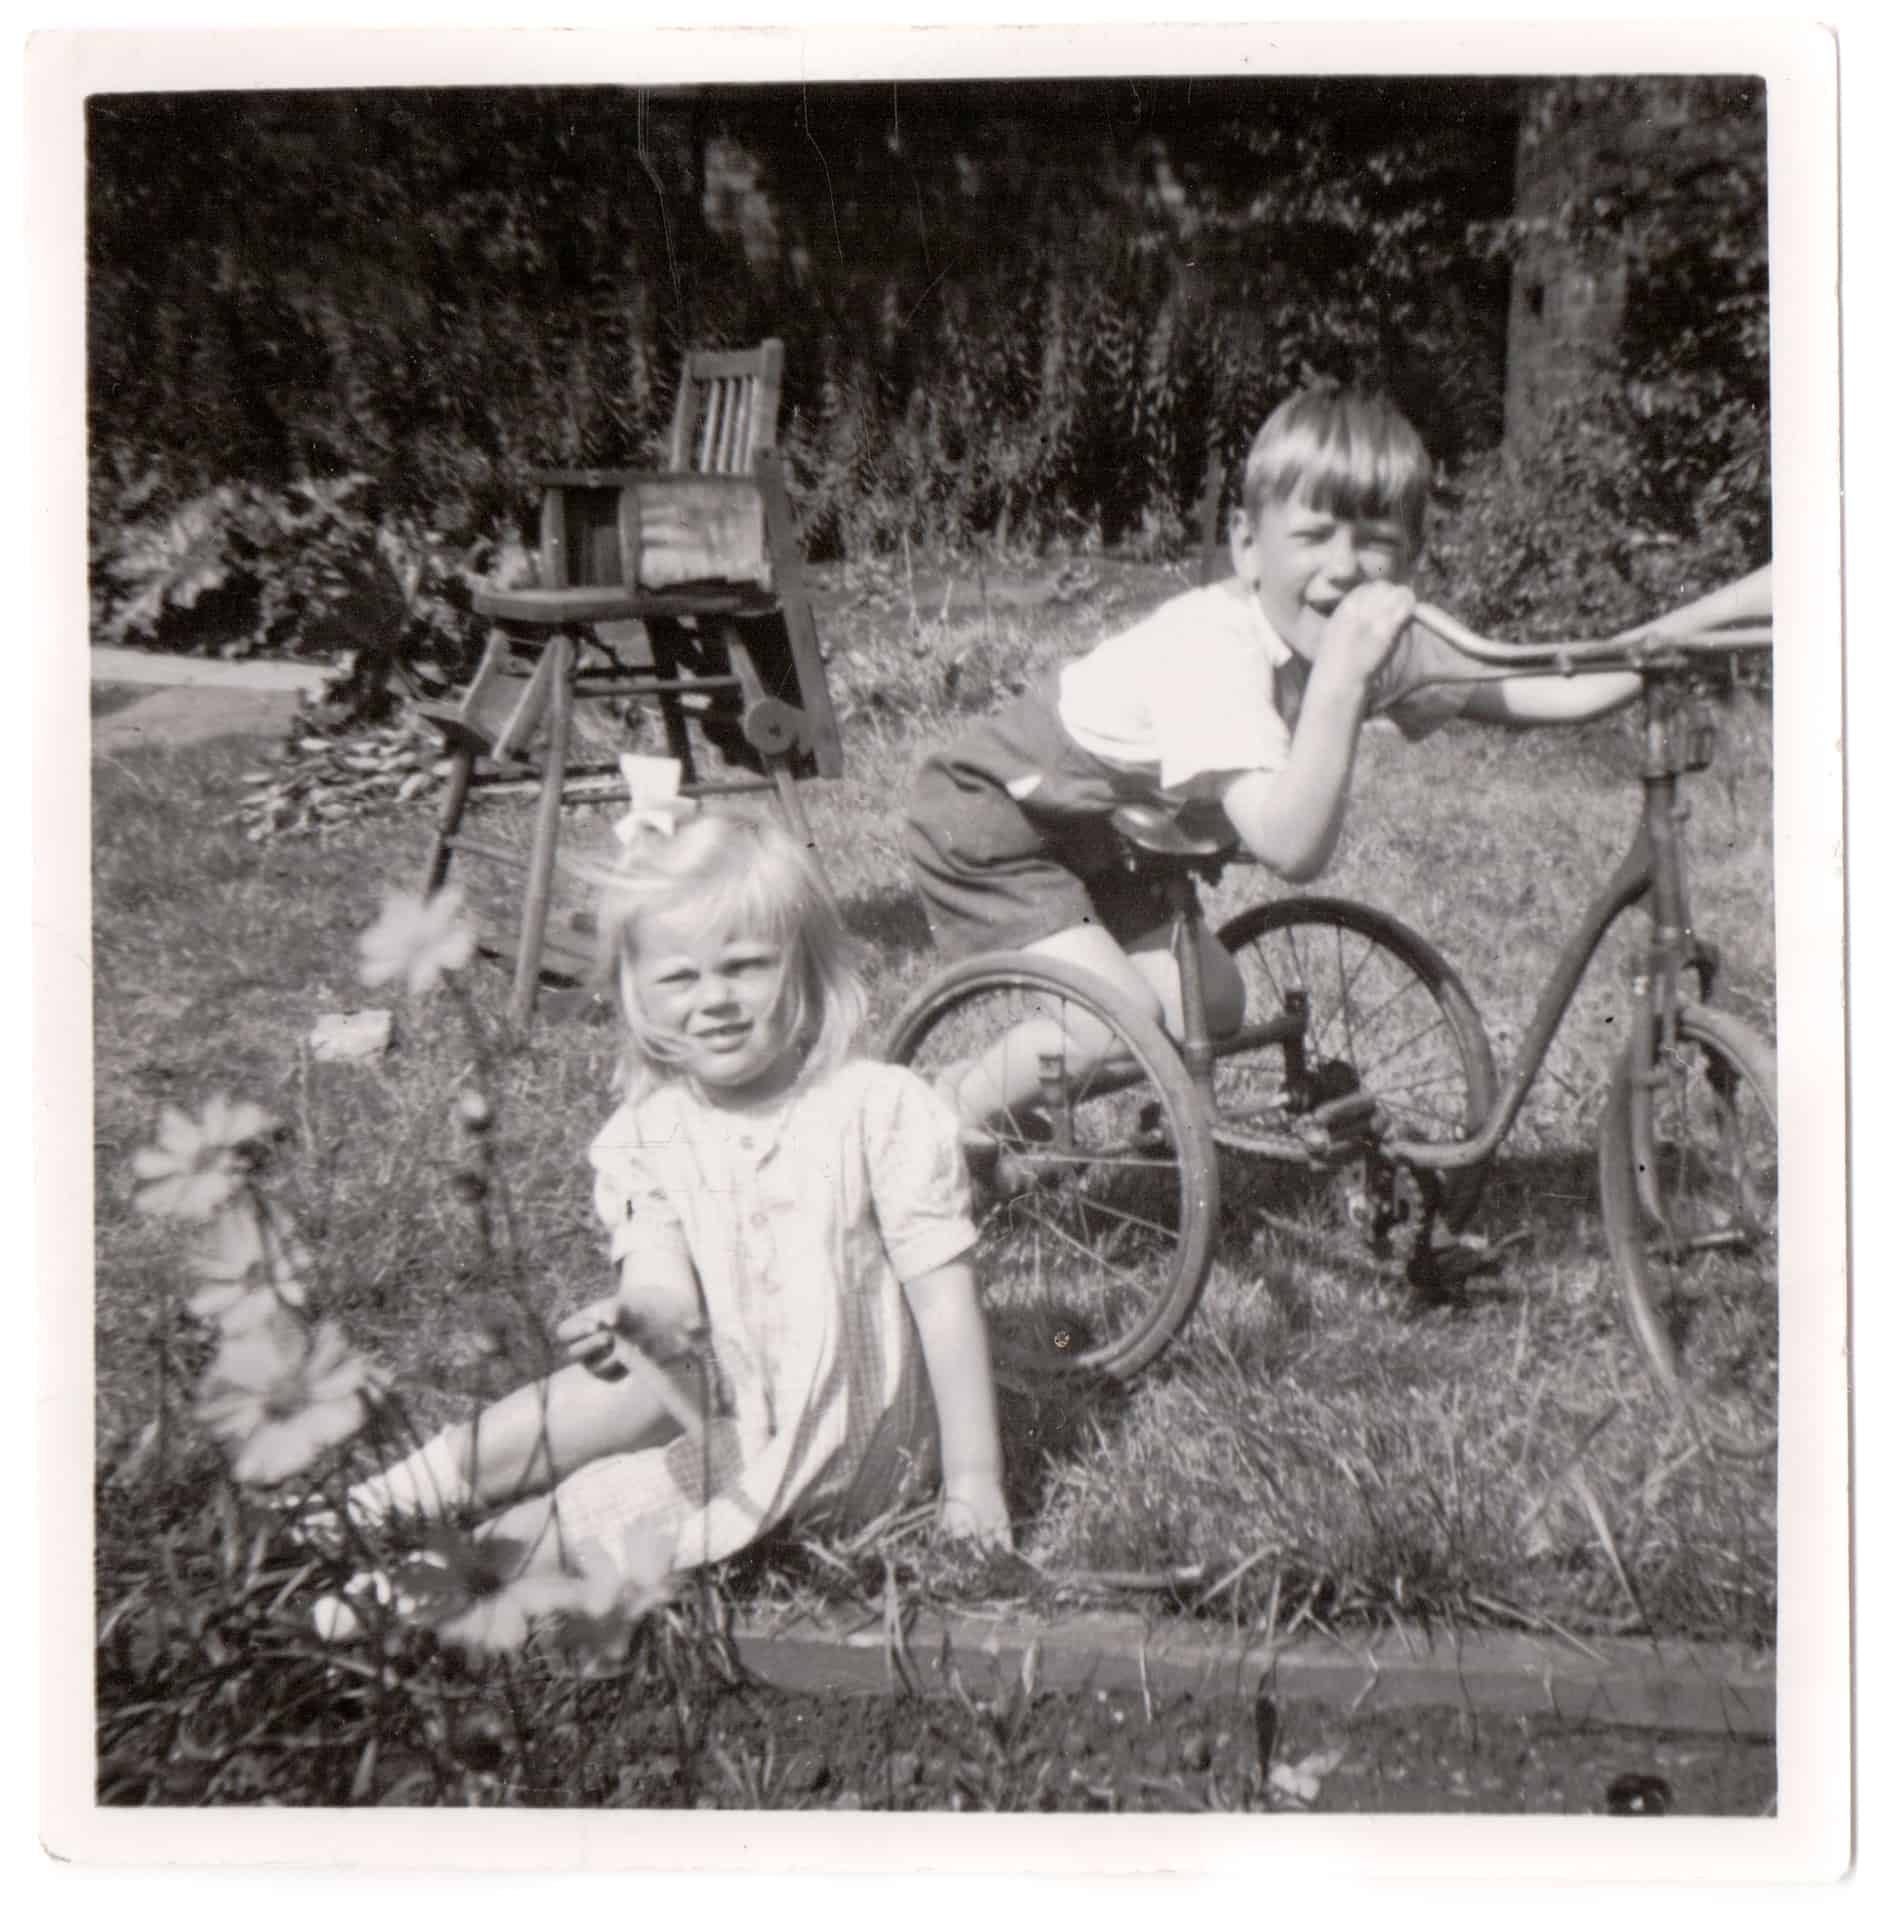 Maria Billington's mum Katherine and her uncle Stephen in the garden taken in the late 1940s.